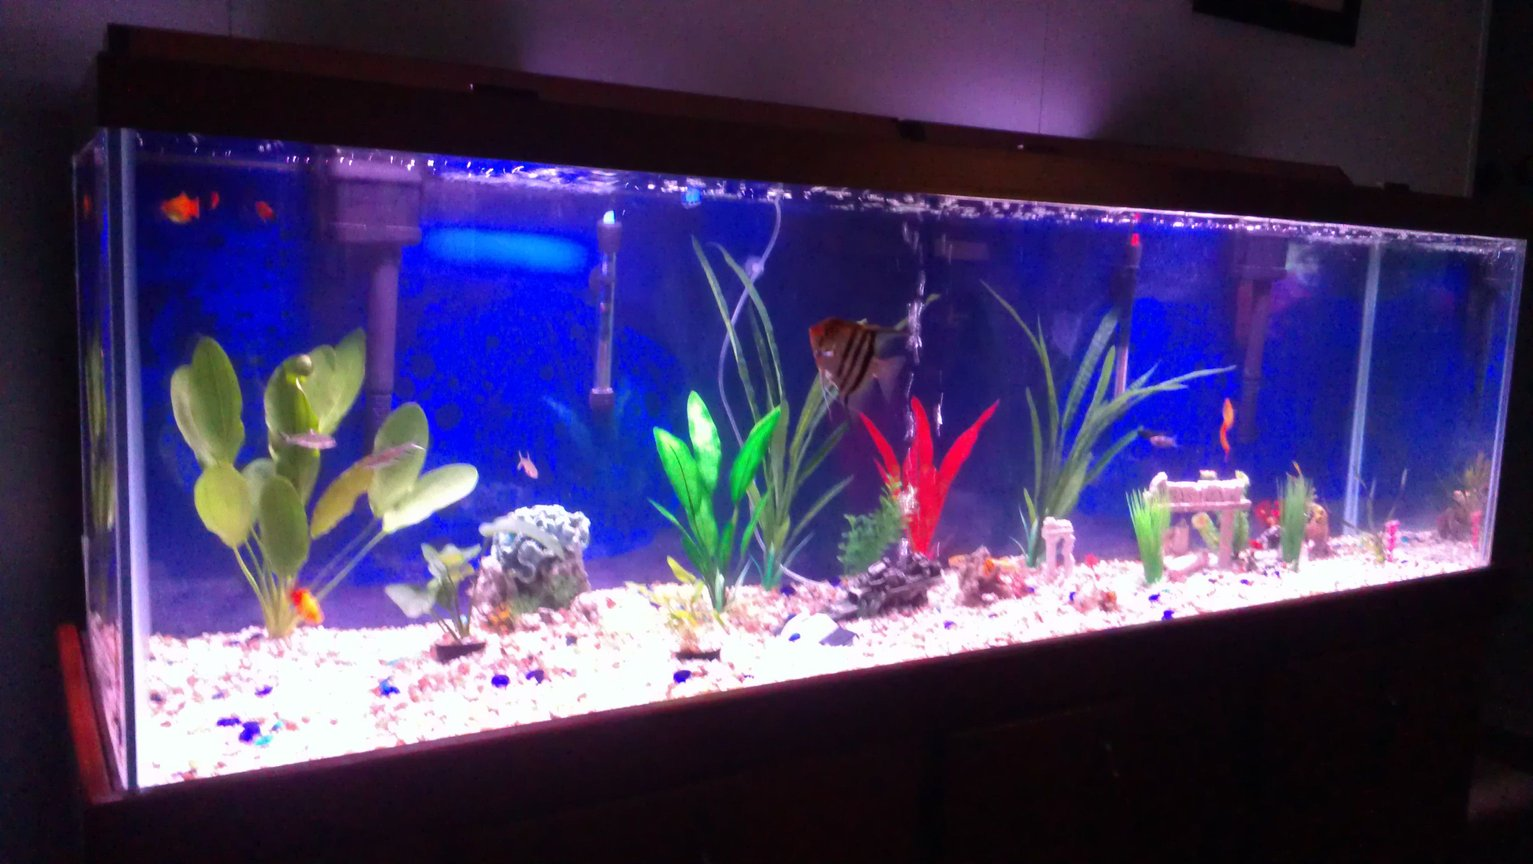 135 gallons freshwater fish tank (mostly fish and non-living decorations) - Freshwater, 3 live plants on left side of tank. Deep blue background. 24 peaceful fish.